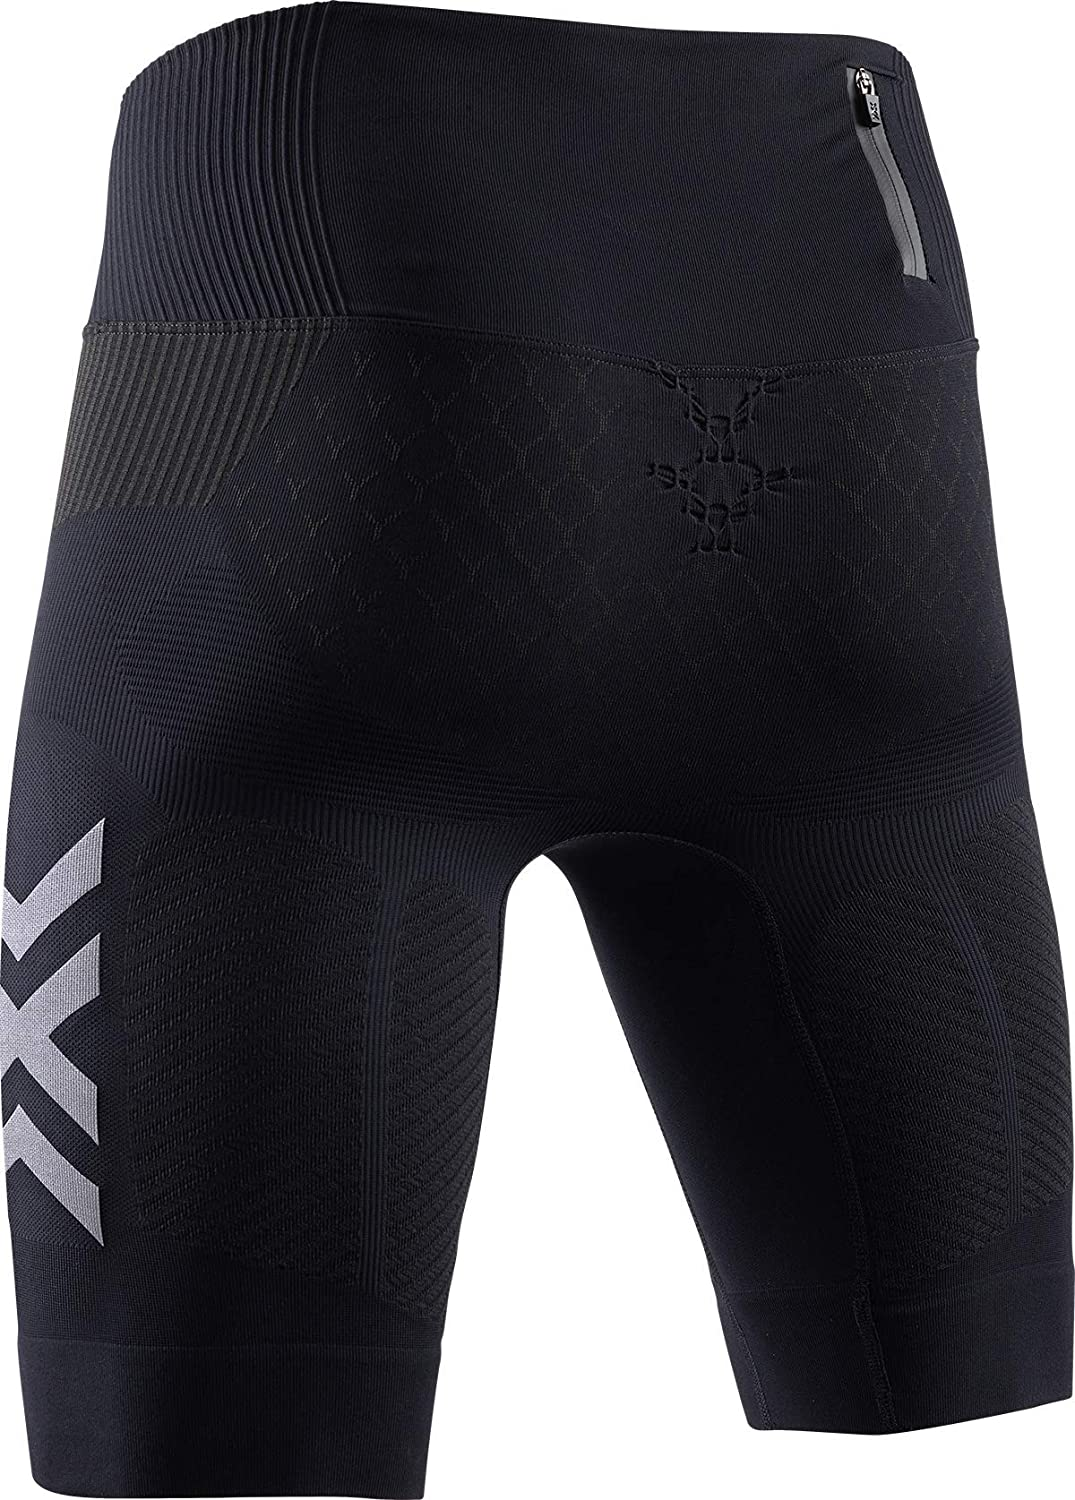 XL Uomo Opal Black//Arctic White X-Bionic Twyce 4.0 Run Shorts Men